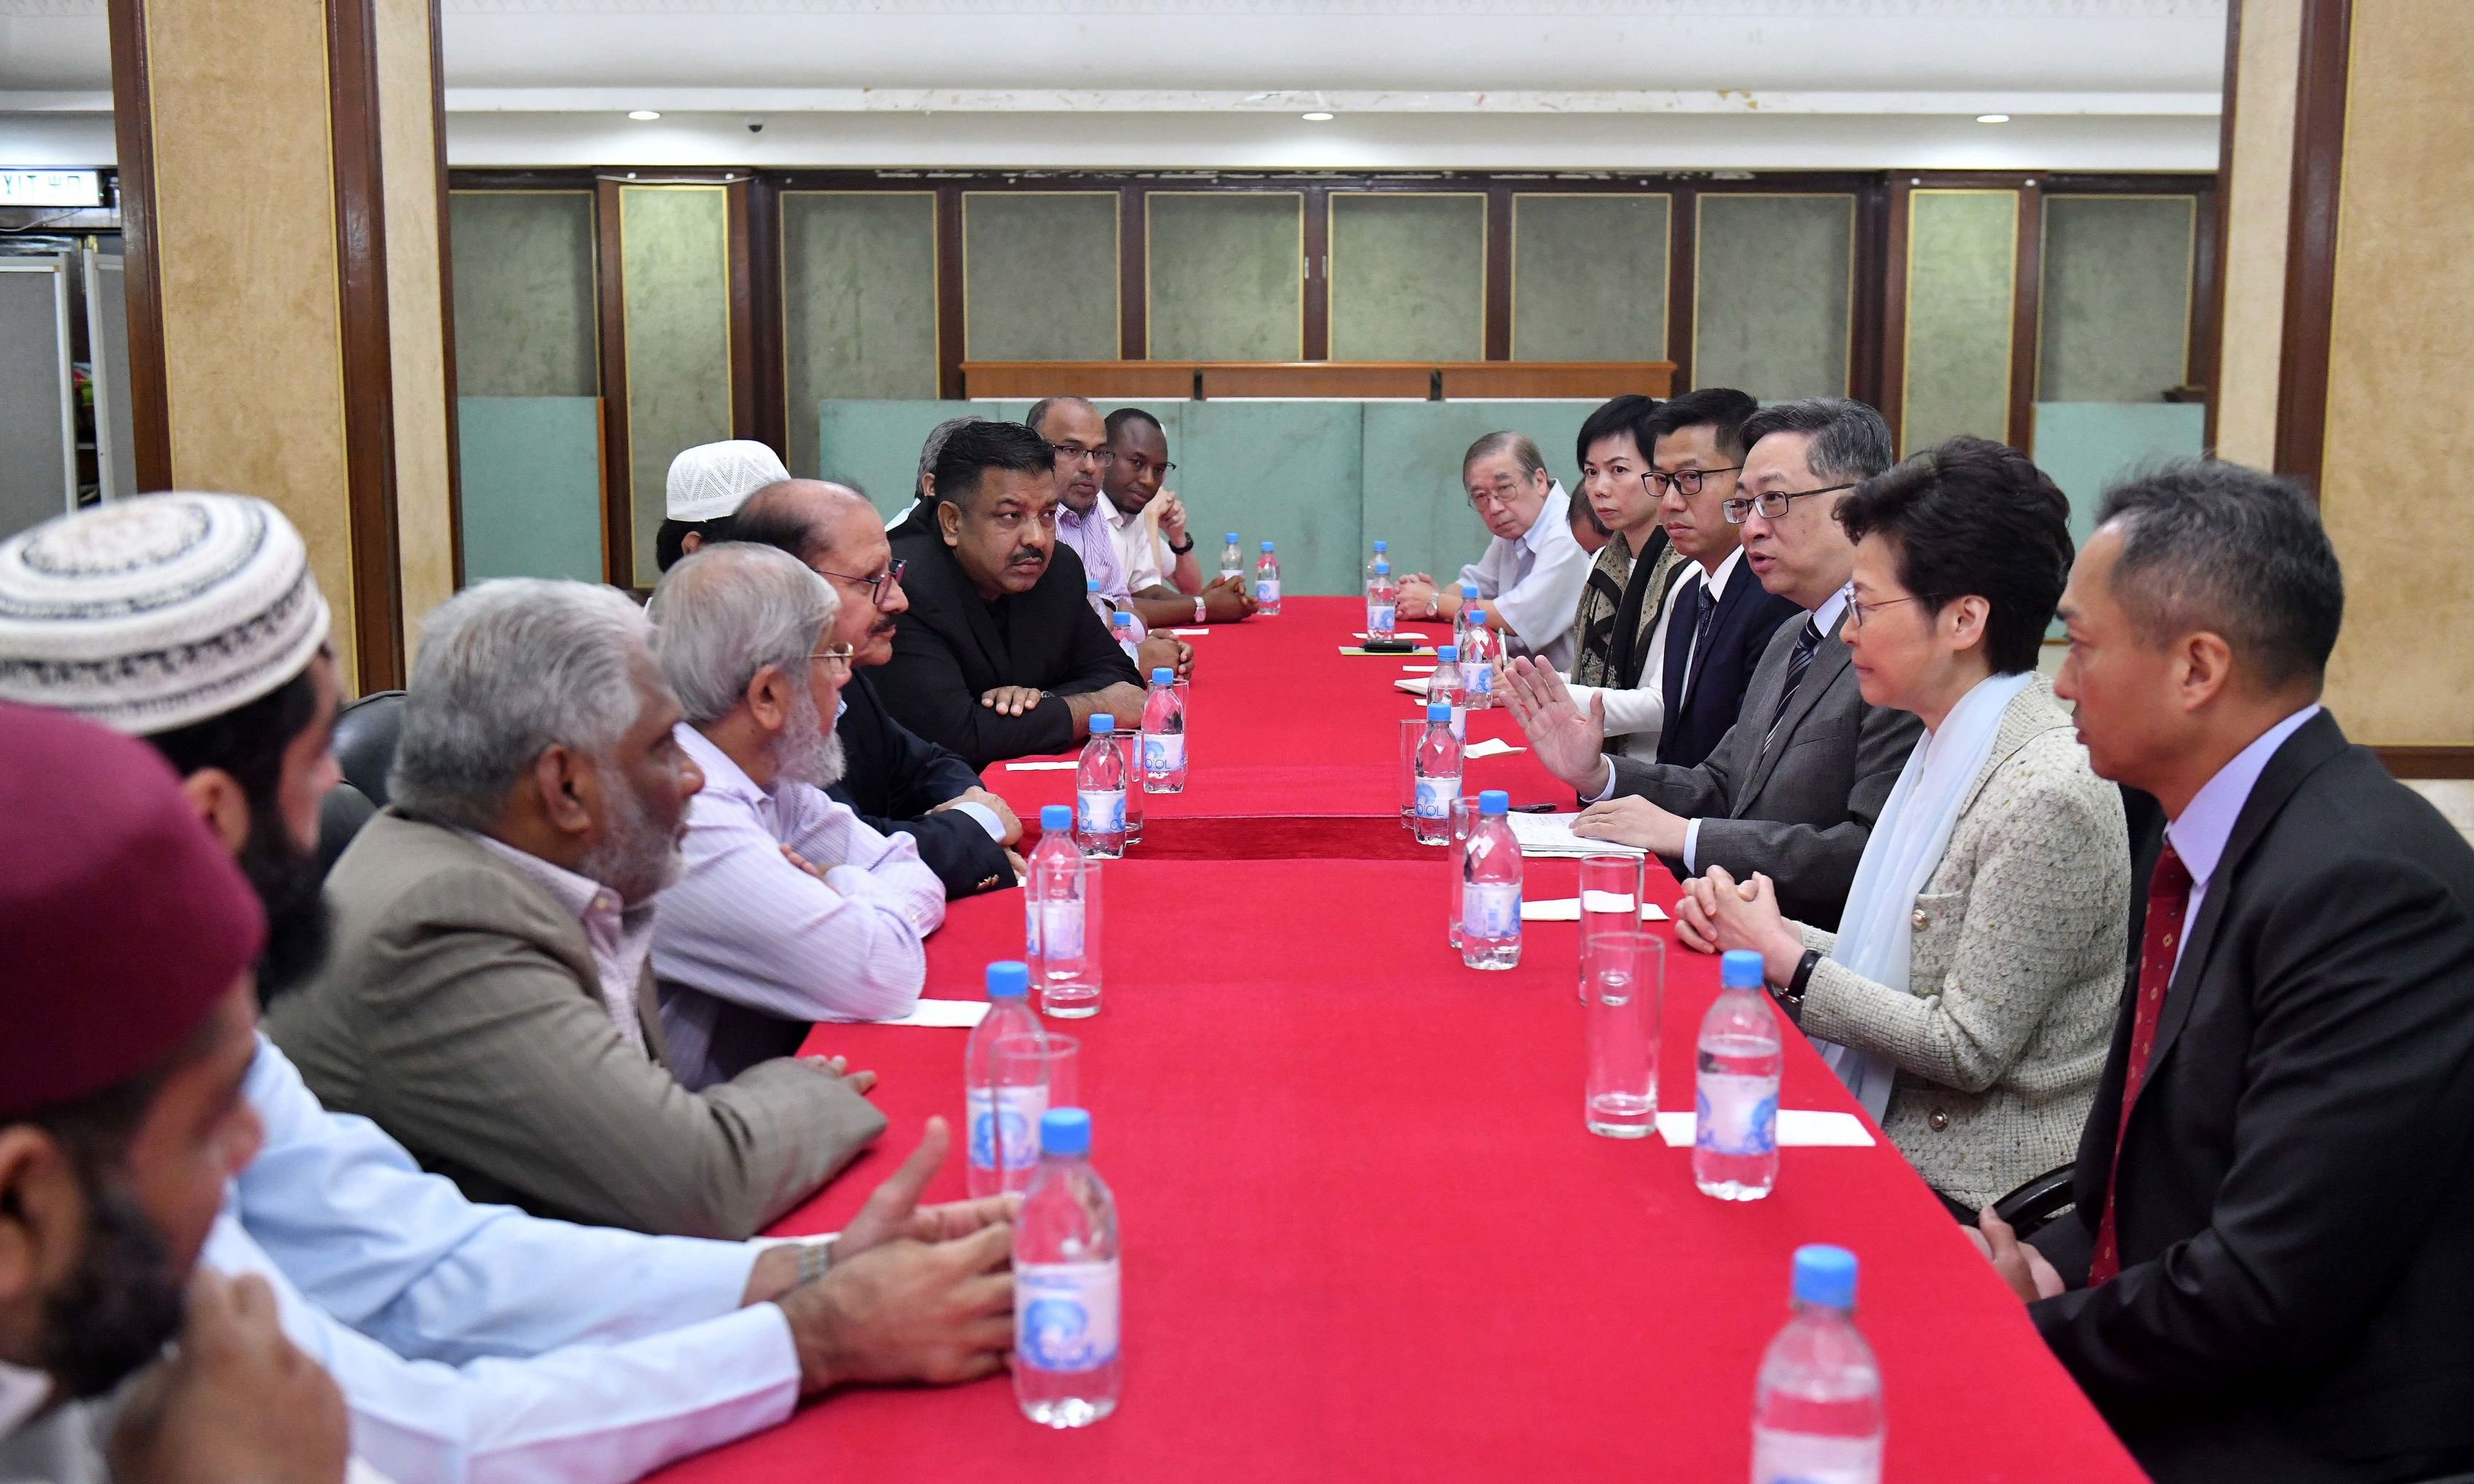 The Chief Executive, Mrs Carrie Lam (second right), together with the Commissioner of Police, Mr Lo Wai-chung (third right), today (October 21) paid a visit to the Kowloon Masjid and Islamic Centre in Tsim Sha Tsui to meet with representatives of the Incorporated Trustees of the Islamic Community Fund of Hong Kong and other leaders of the local Muslim community.